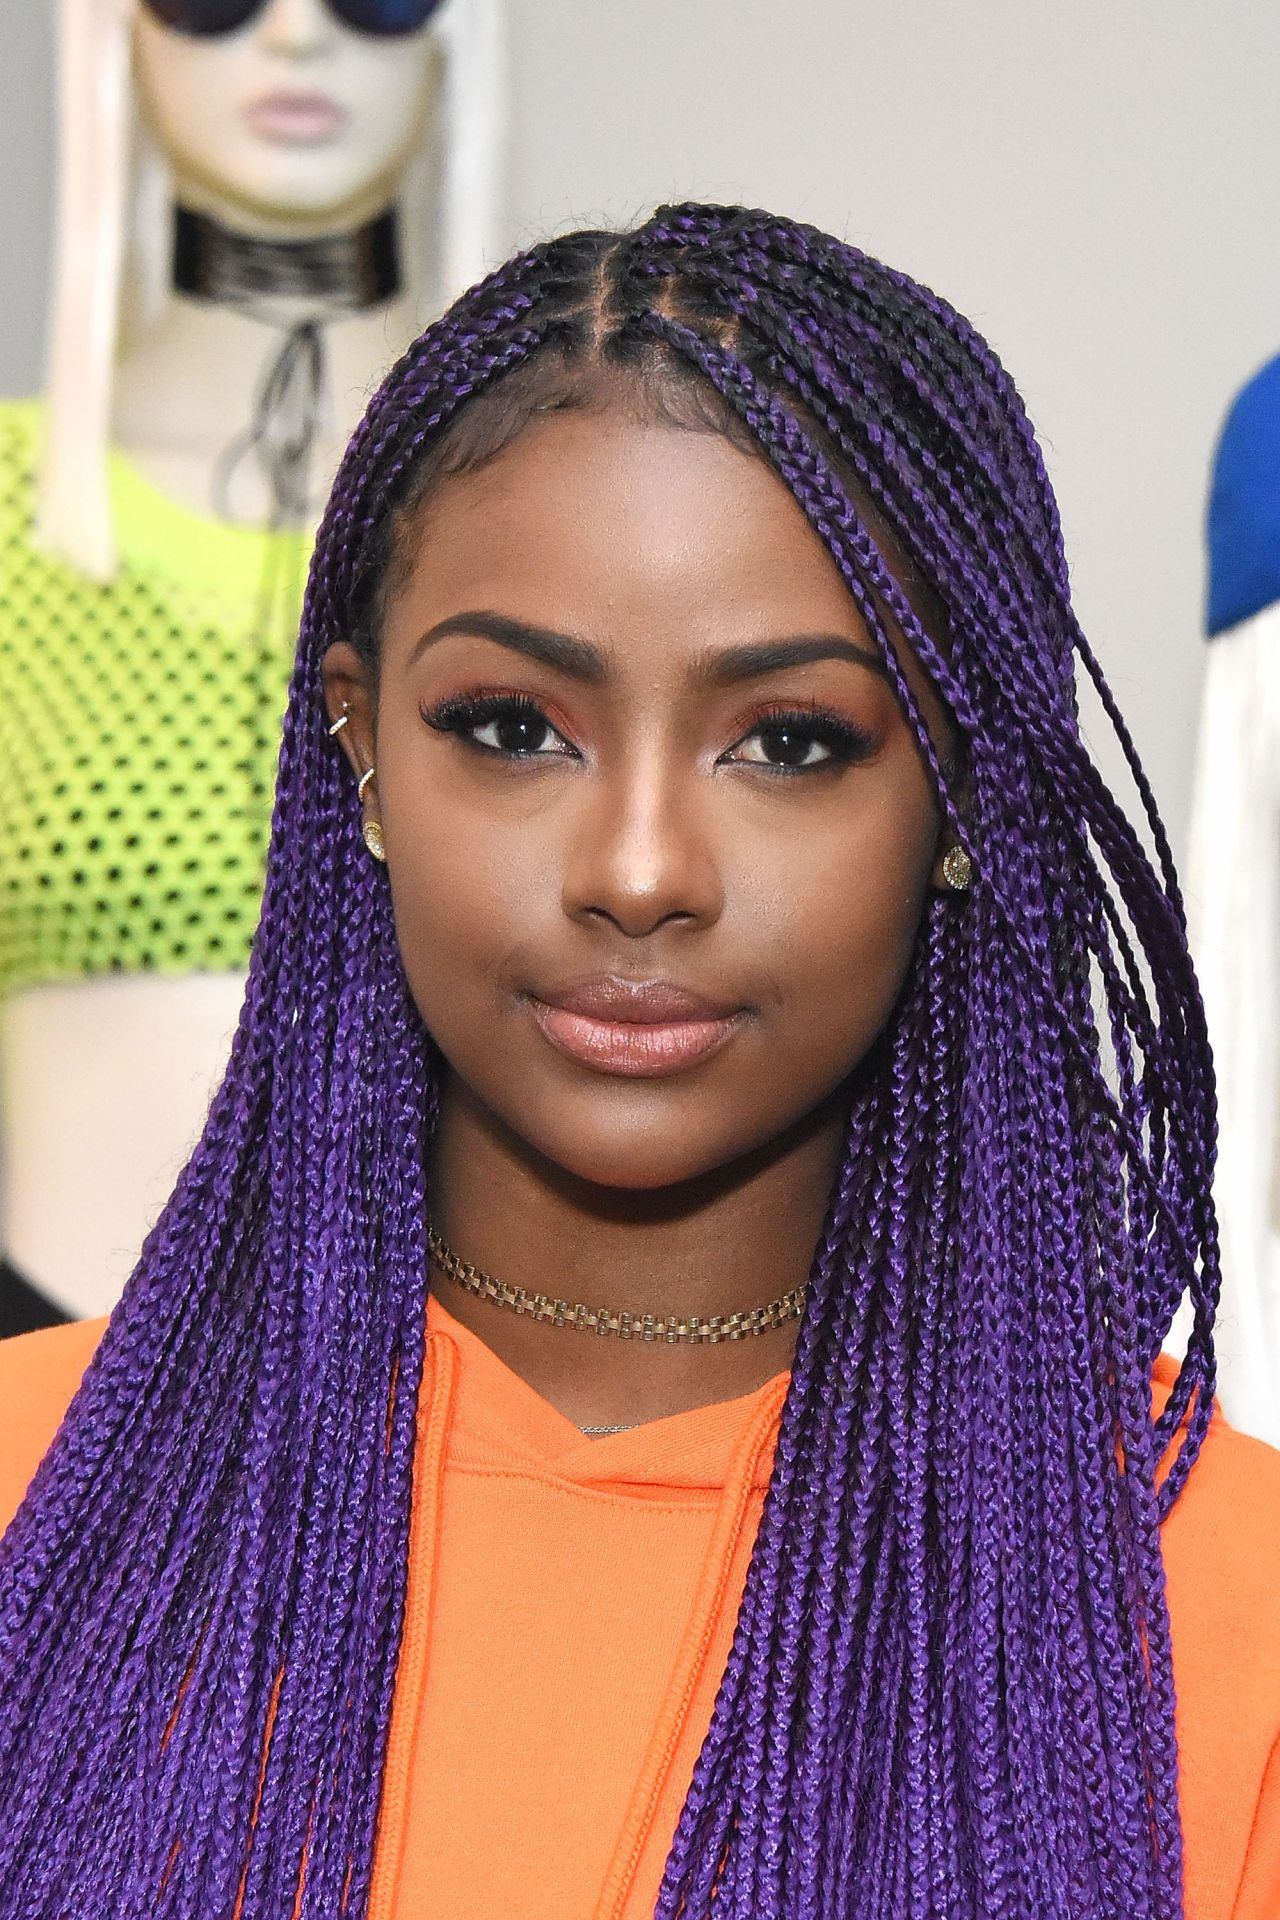 Coachella 2017 fashion - Justine Skye Latest Photos Celebmafia